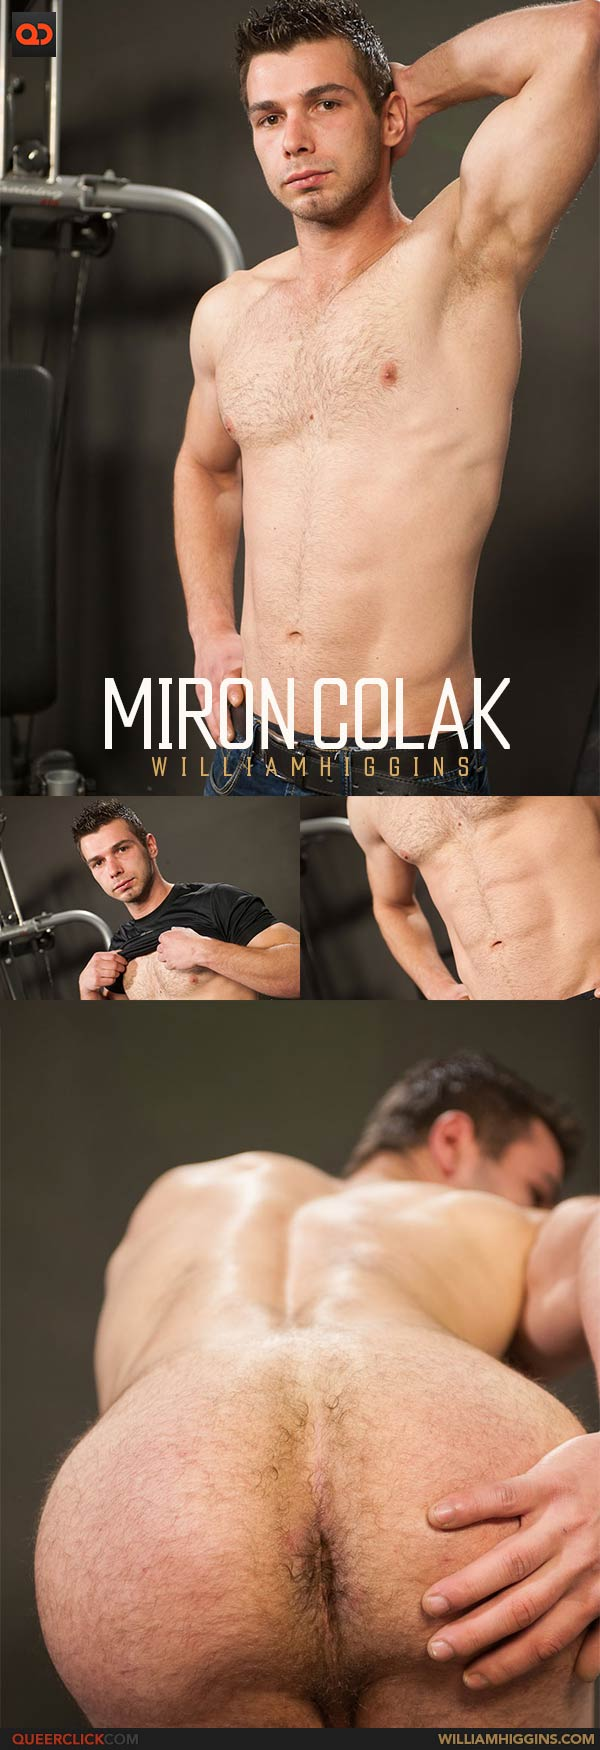 William Higgins: Miron Colak